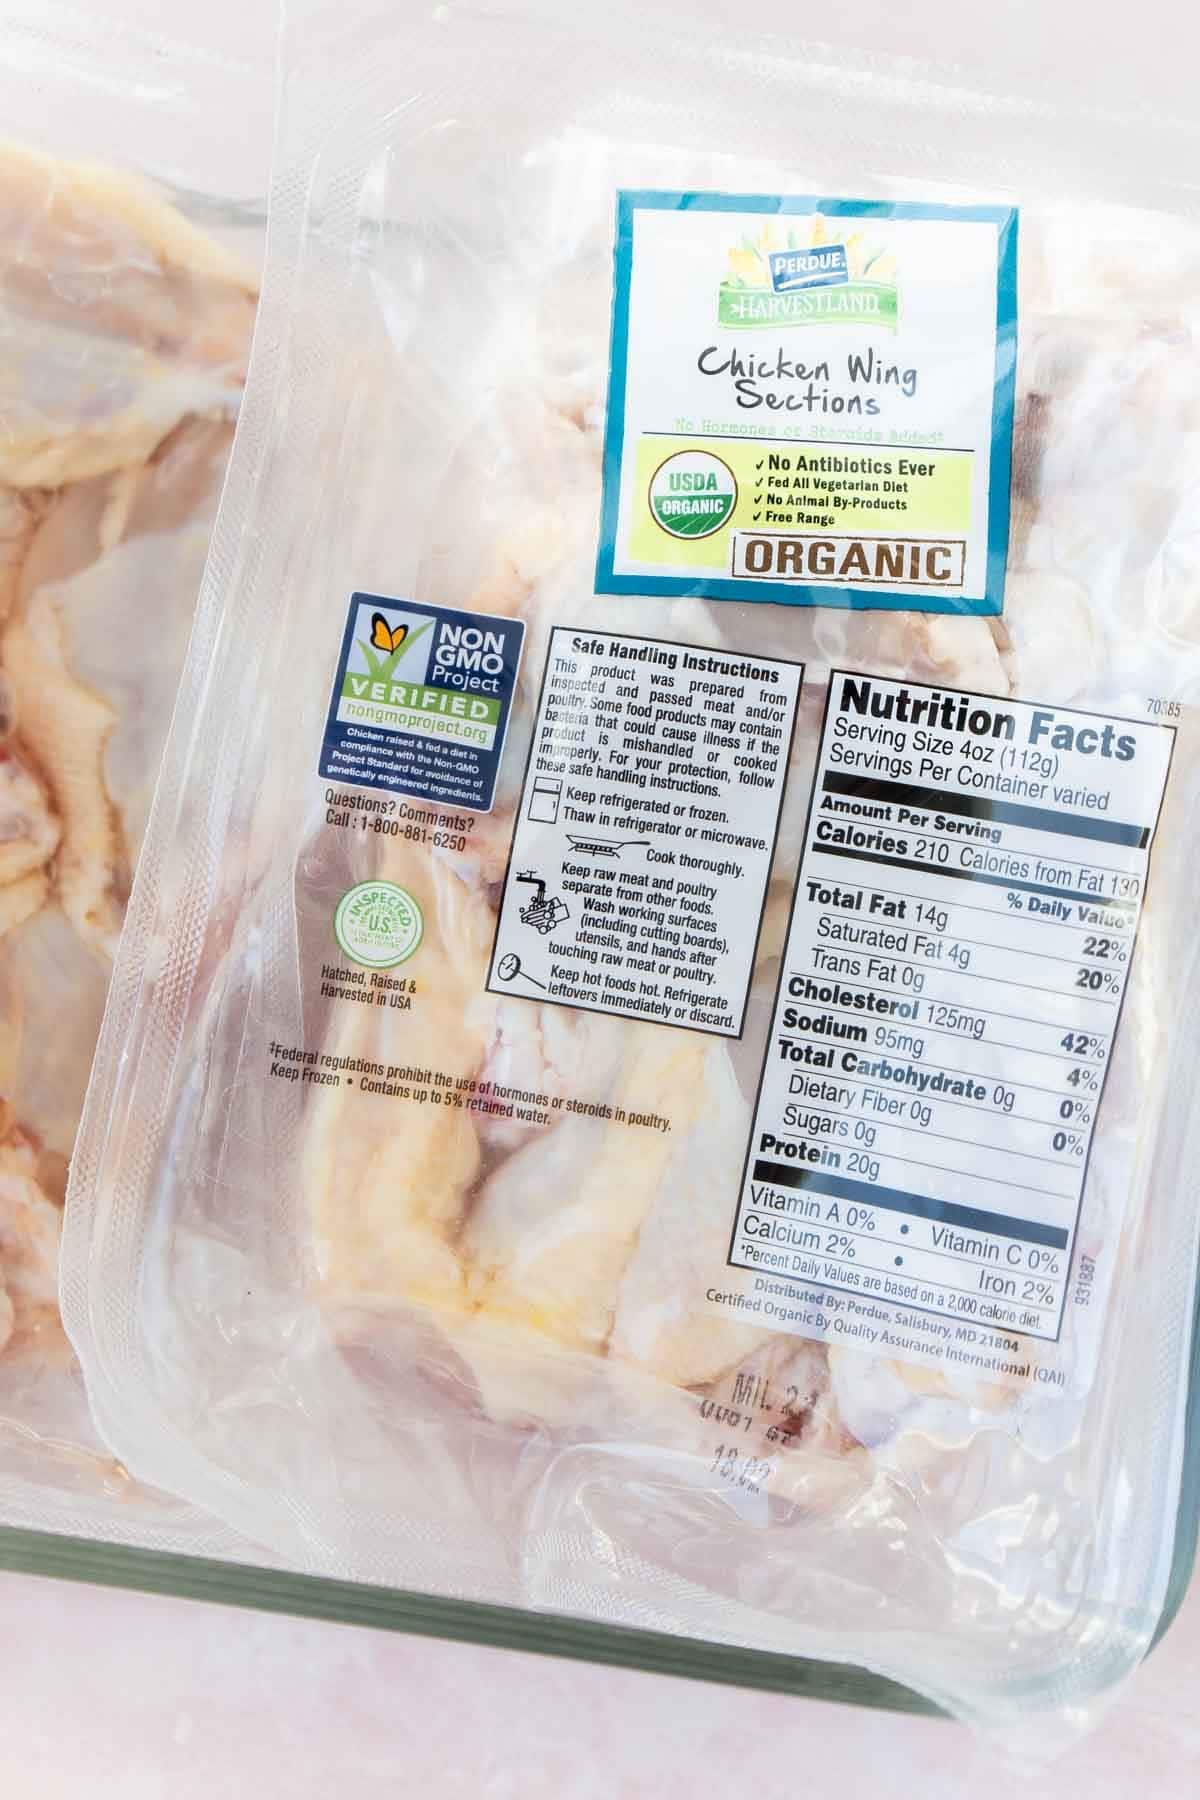 A pack of Perdue Harvestland organic chicken wings